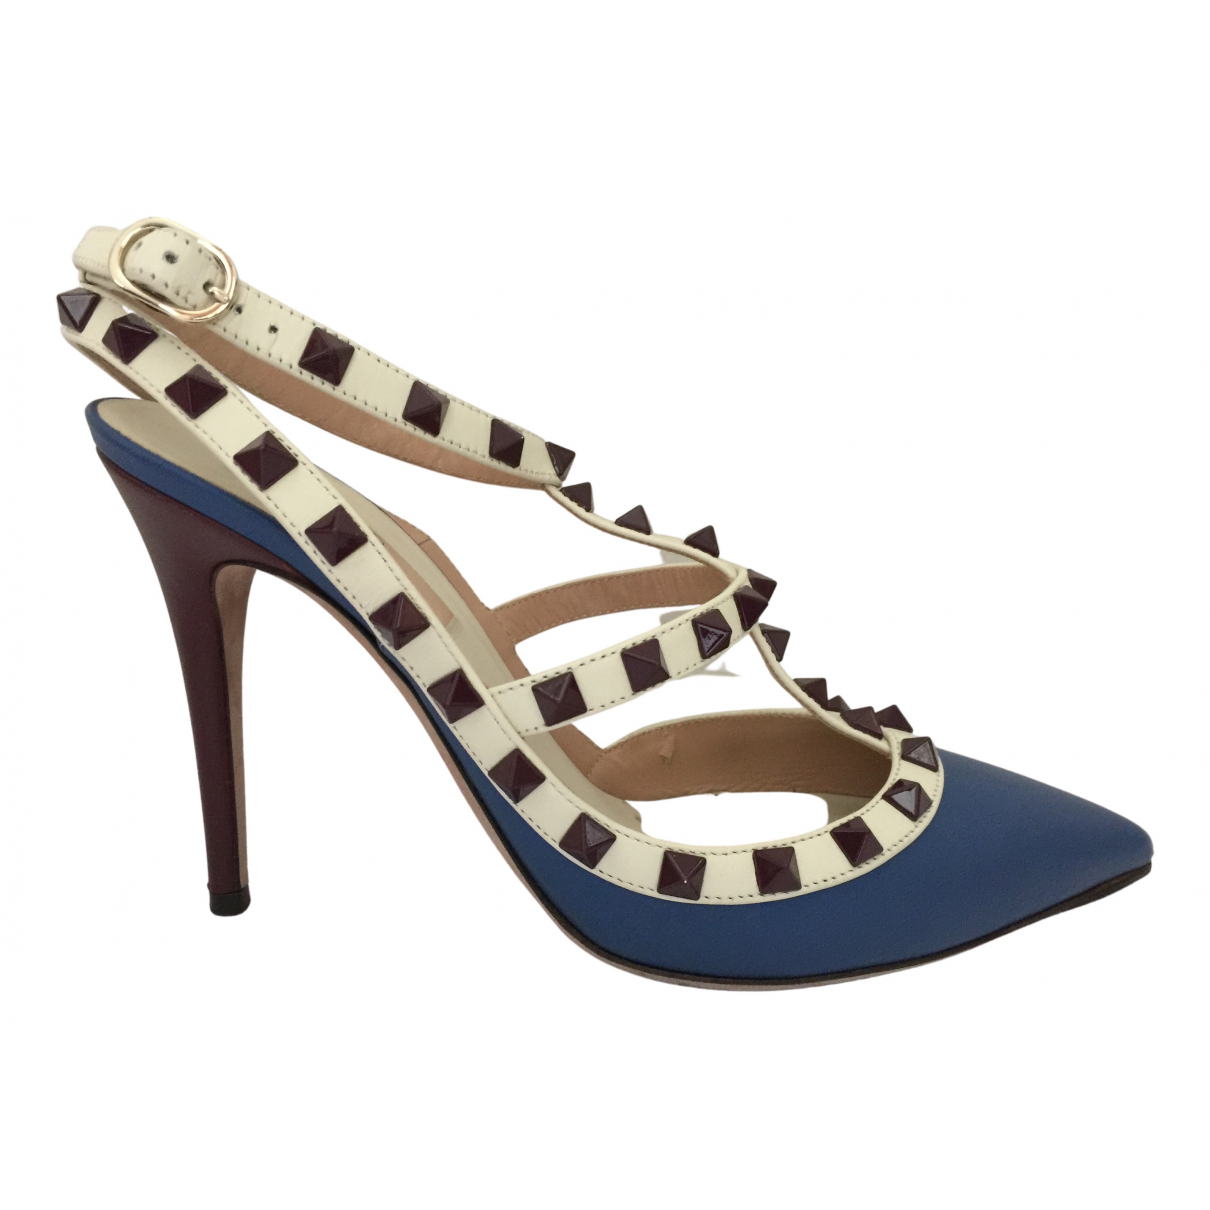 Valentino Garavani Rockstud Leather Heels for Women 37 IT